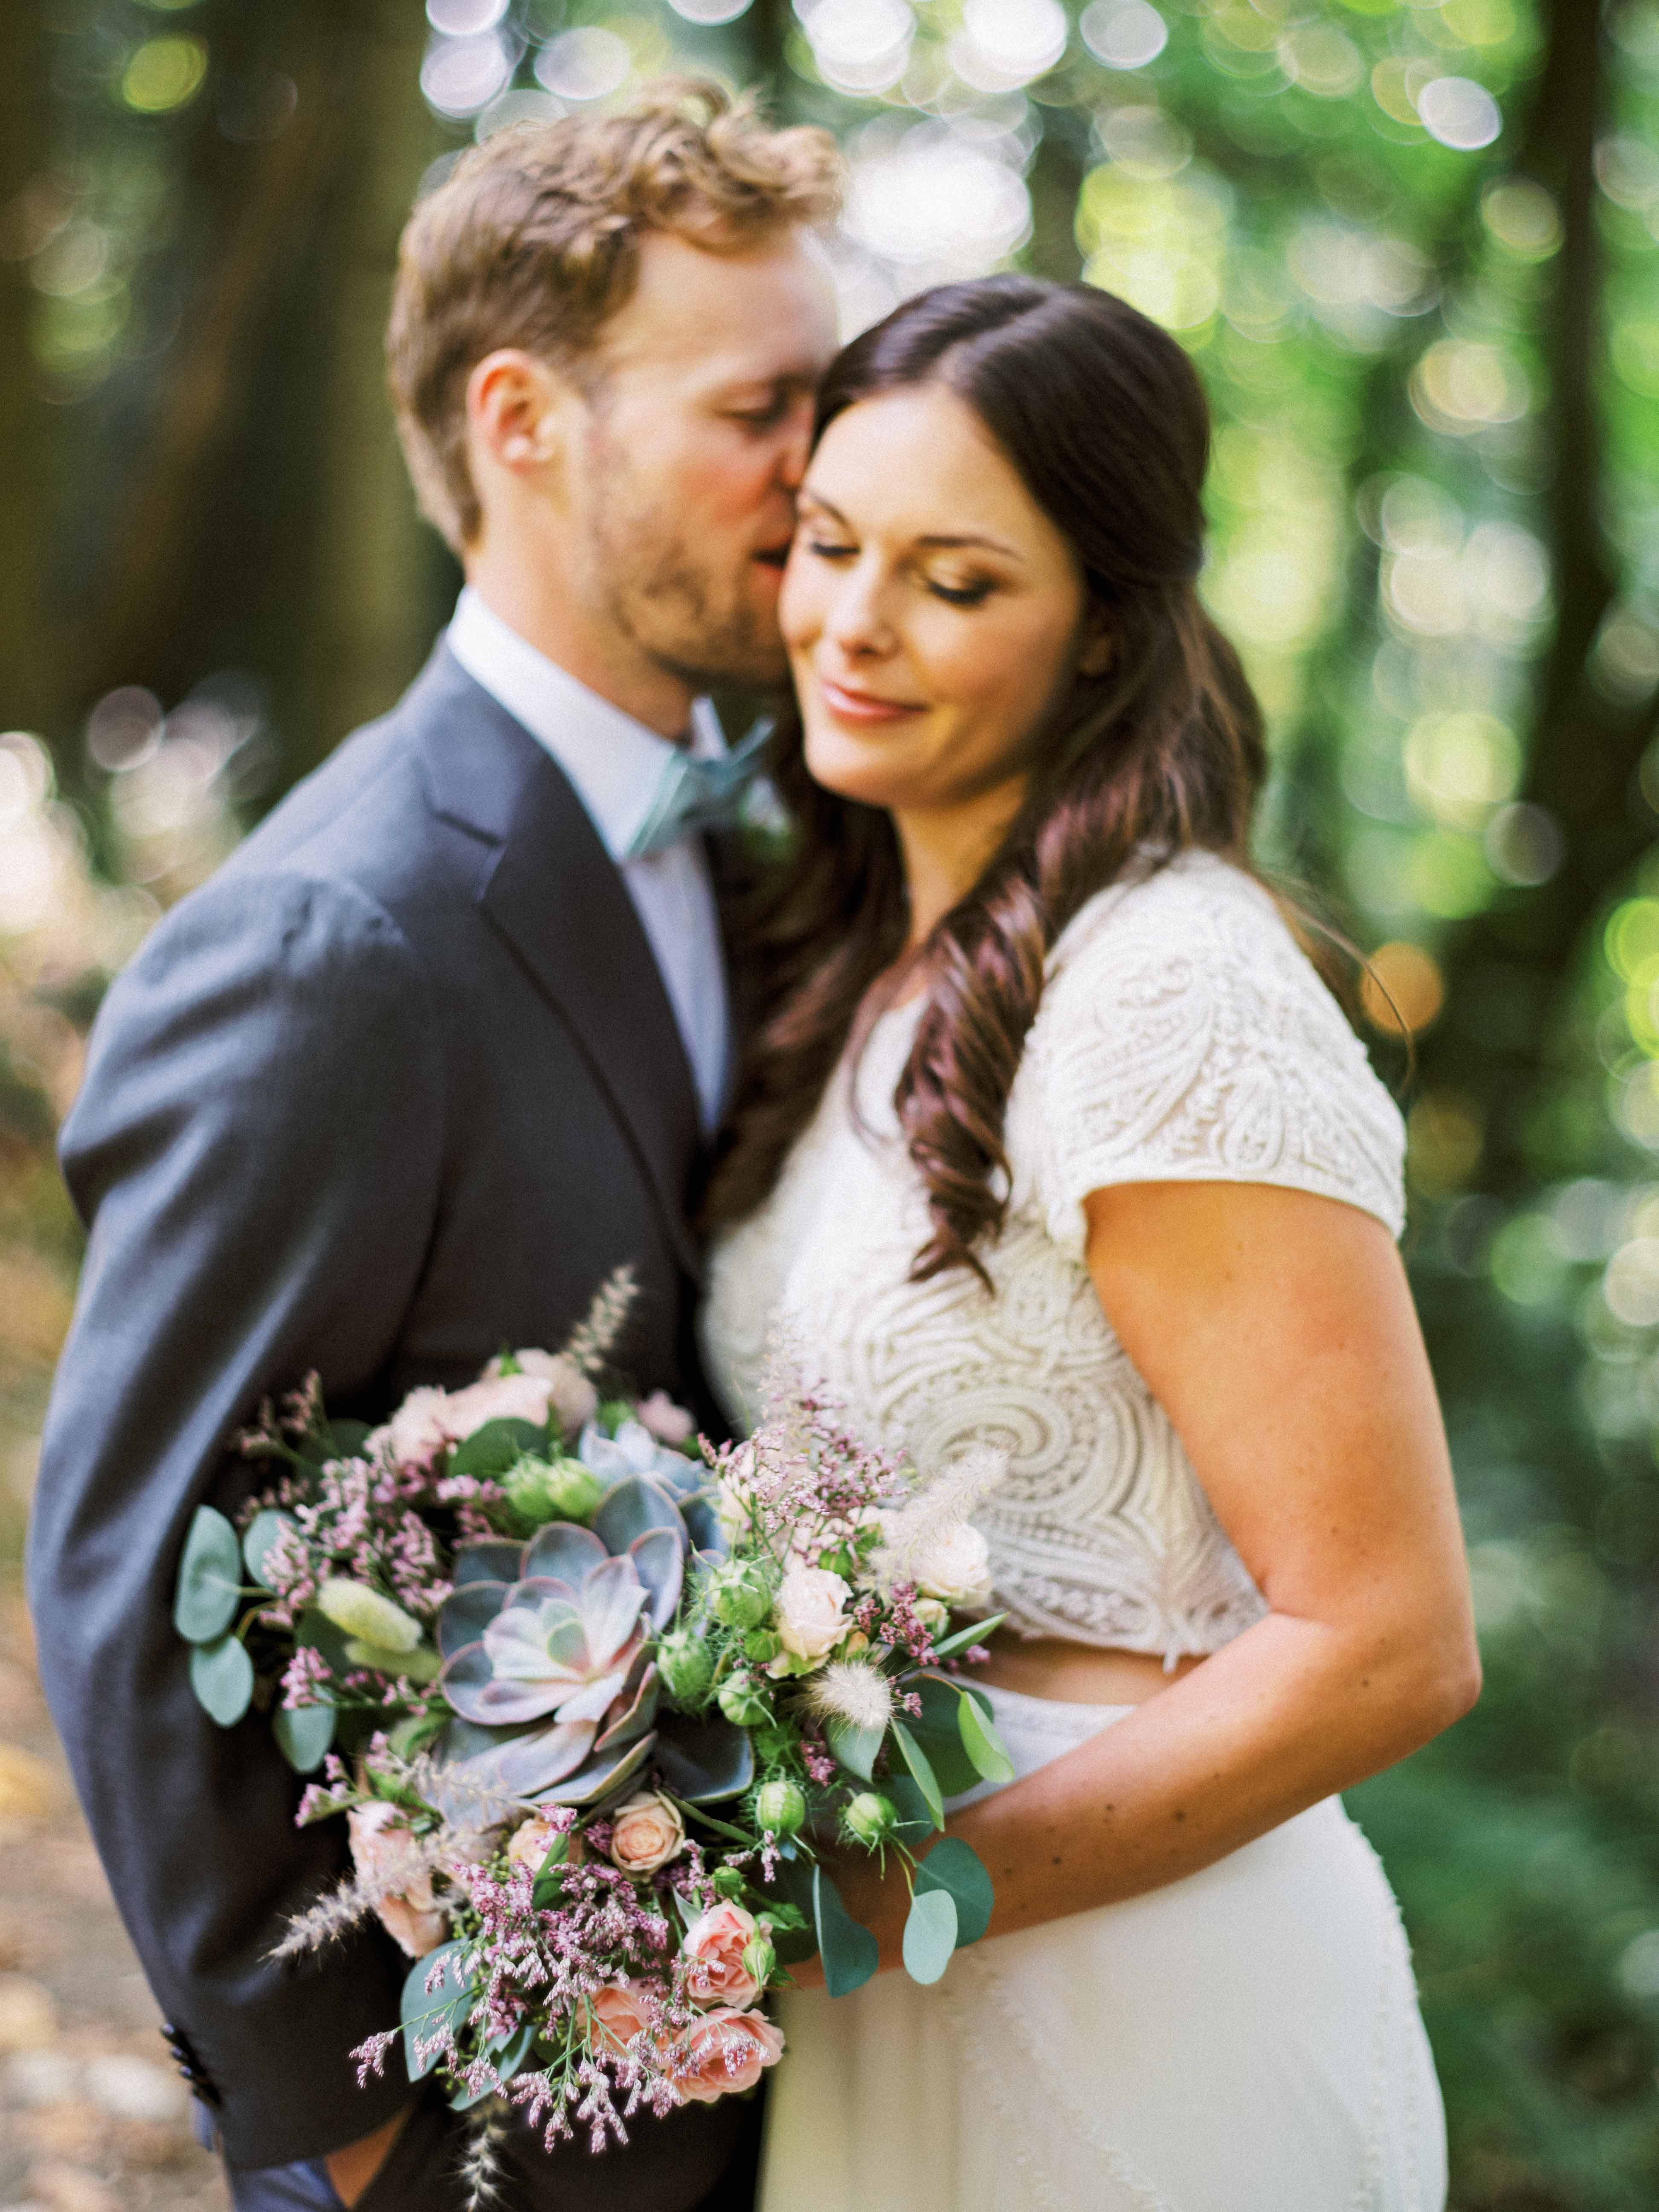 Bride and groom with succulent bouquet - Woodmark Hotel Wedding by Flora Nova Design Seattle